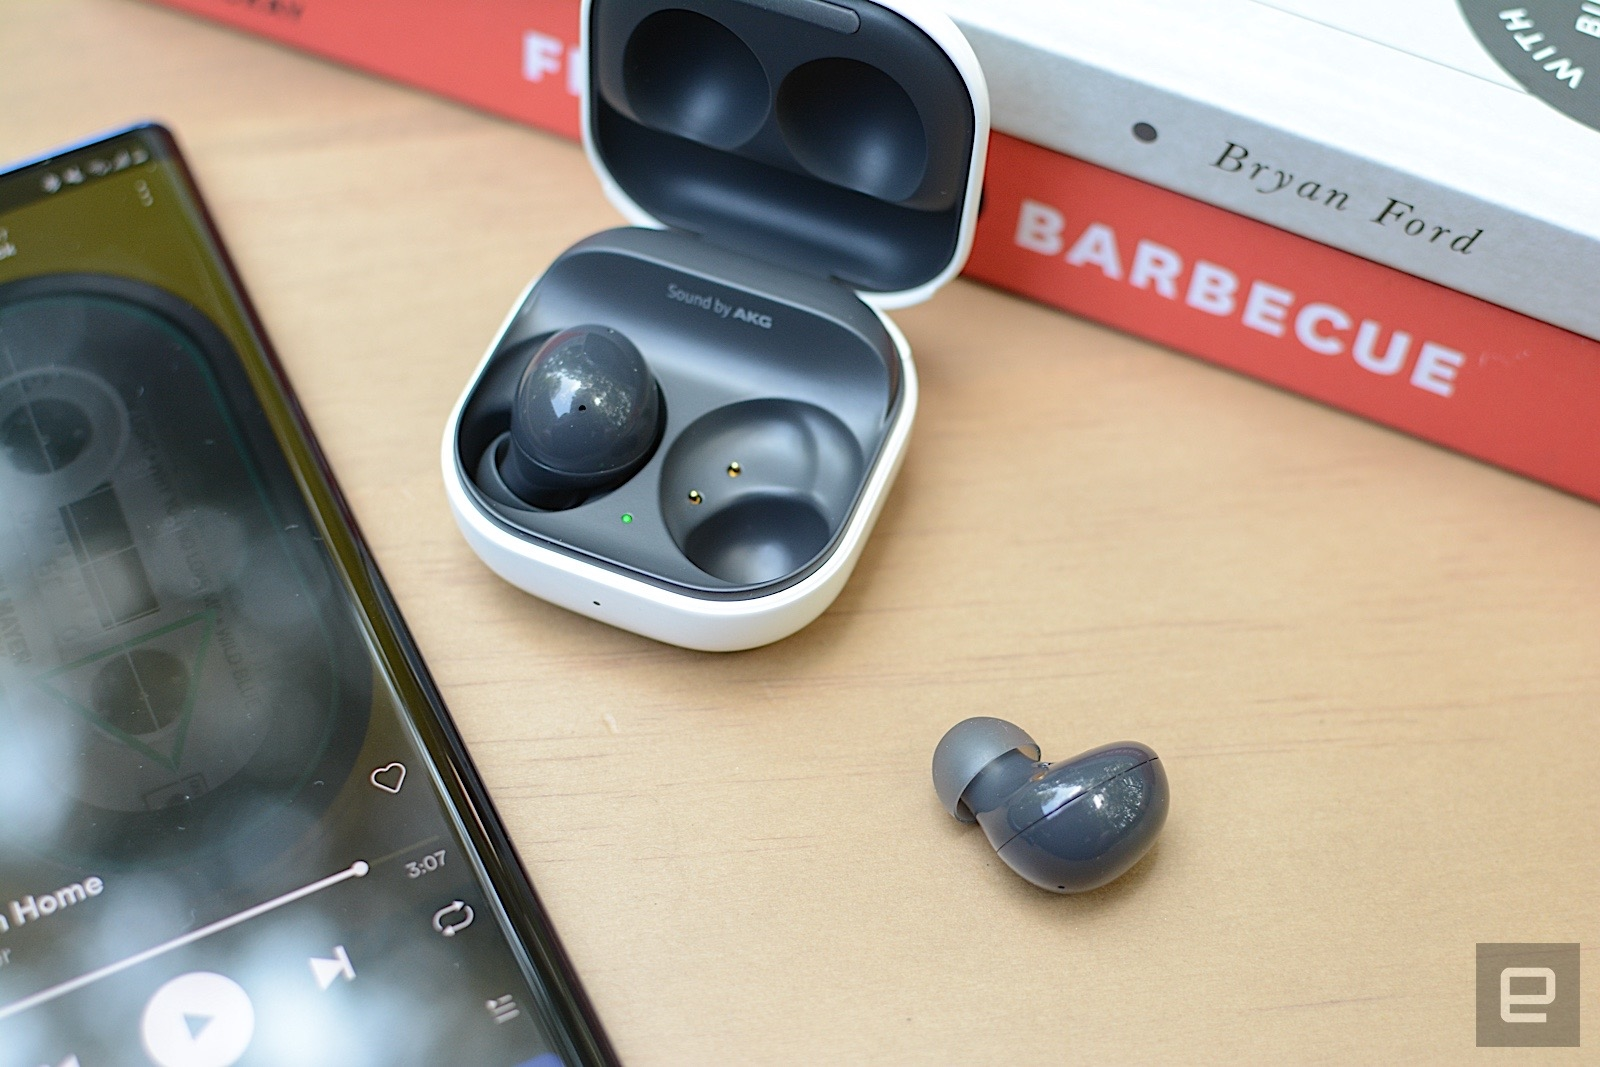 With the Galaxy Buds 2, Samsung adds active noise cancellation to its most affordable true wireless earbuds. This successor to the Galaxy Buds+ are smaller and more comfortable with premium features like wireless charging and adjustable ambient sound. However, ANC performance is only decent and there's no deep iOS integration like previous models. Still, at this price, Samsung has created a compelling package despite the sacrifices. | DeviceDaily.com